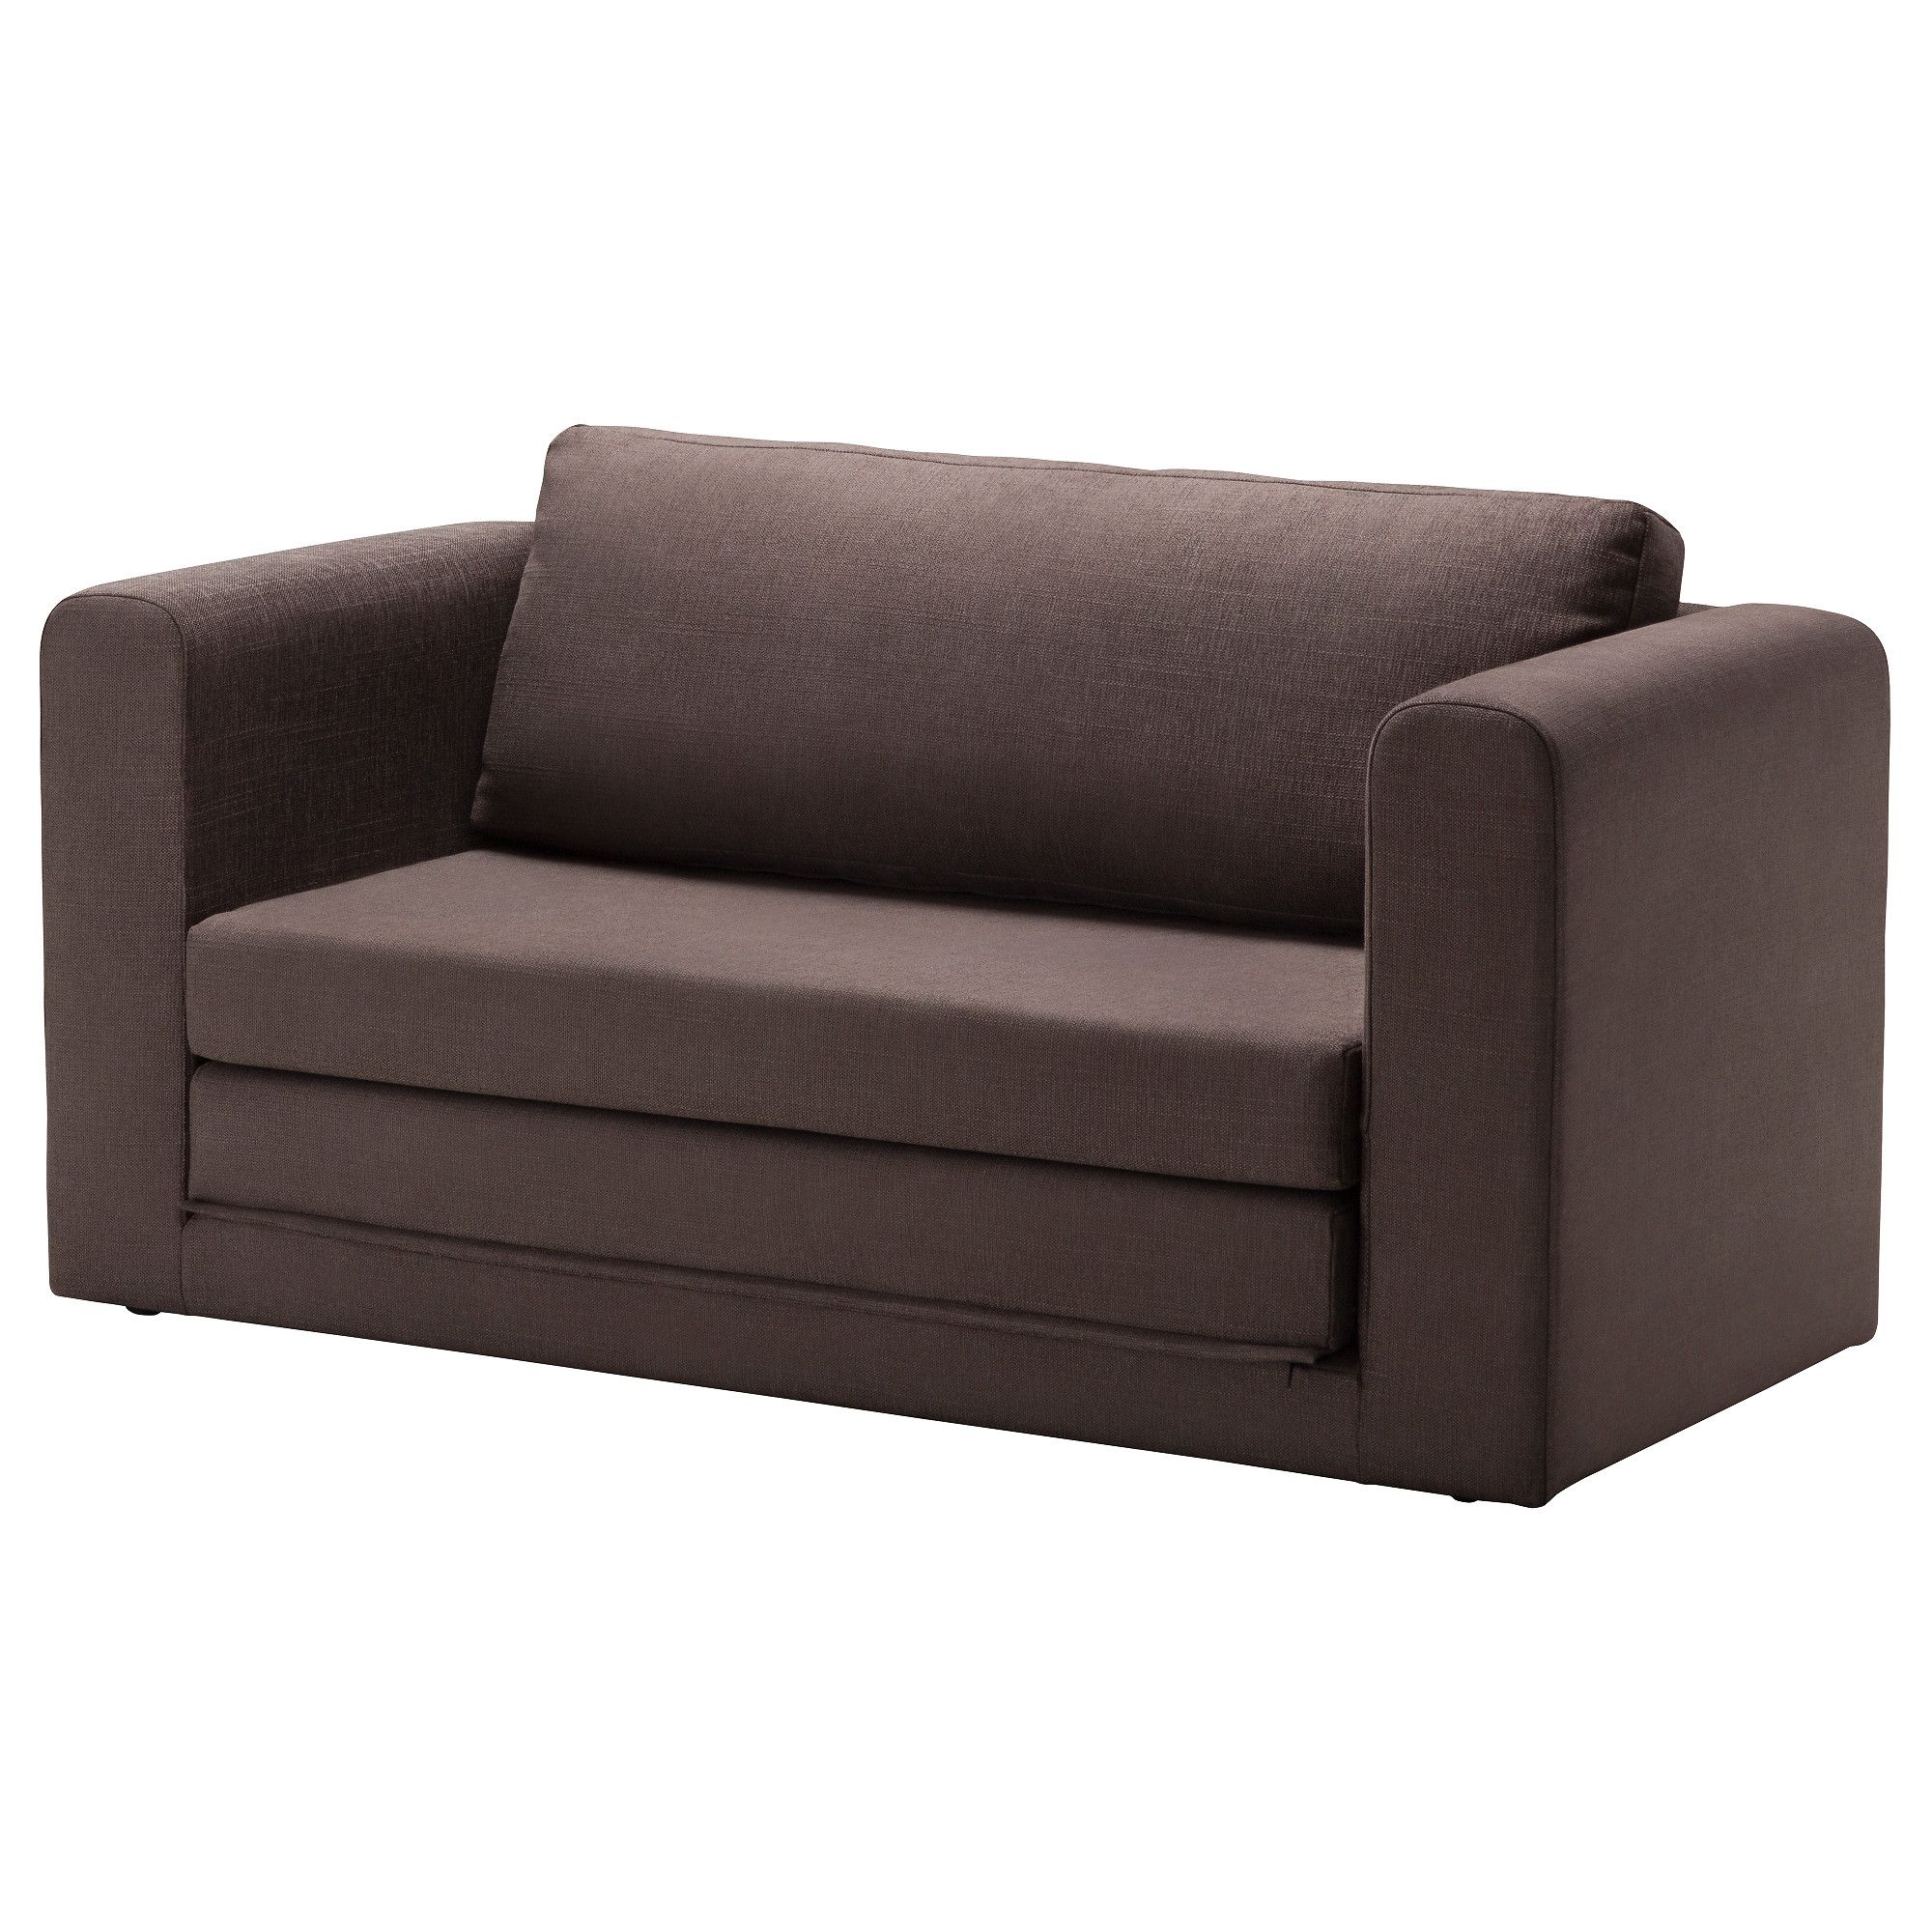 IKEA ASKEBY two seat sofa bed Readily converts into a bed